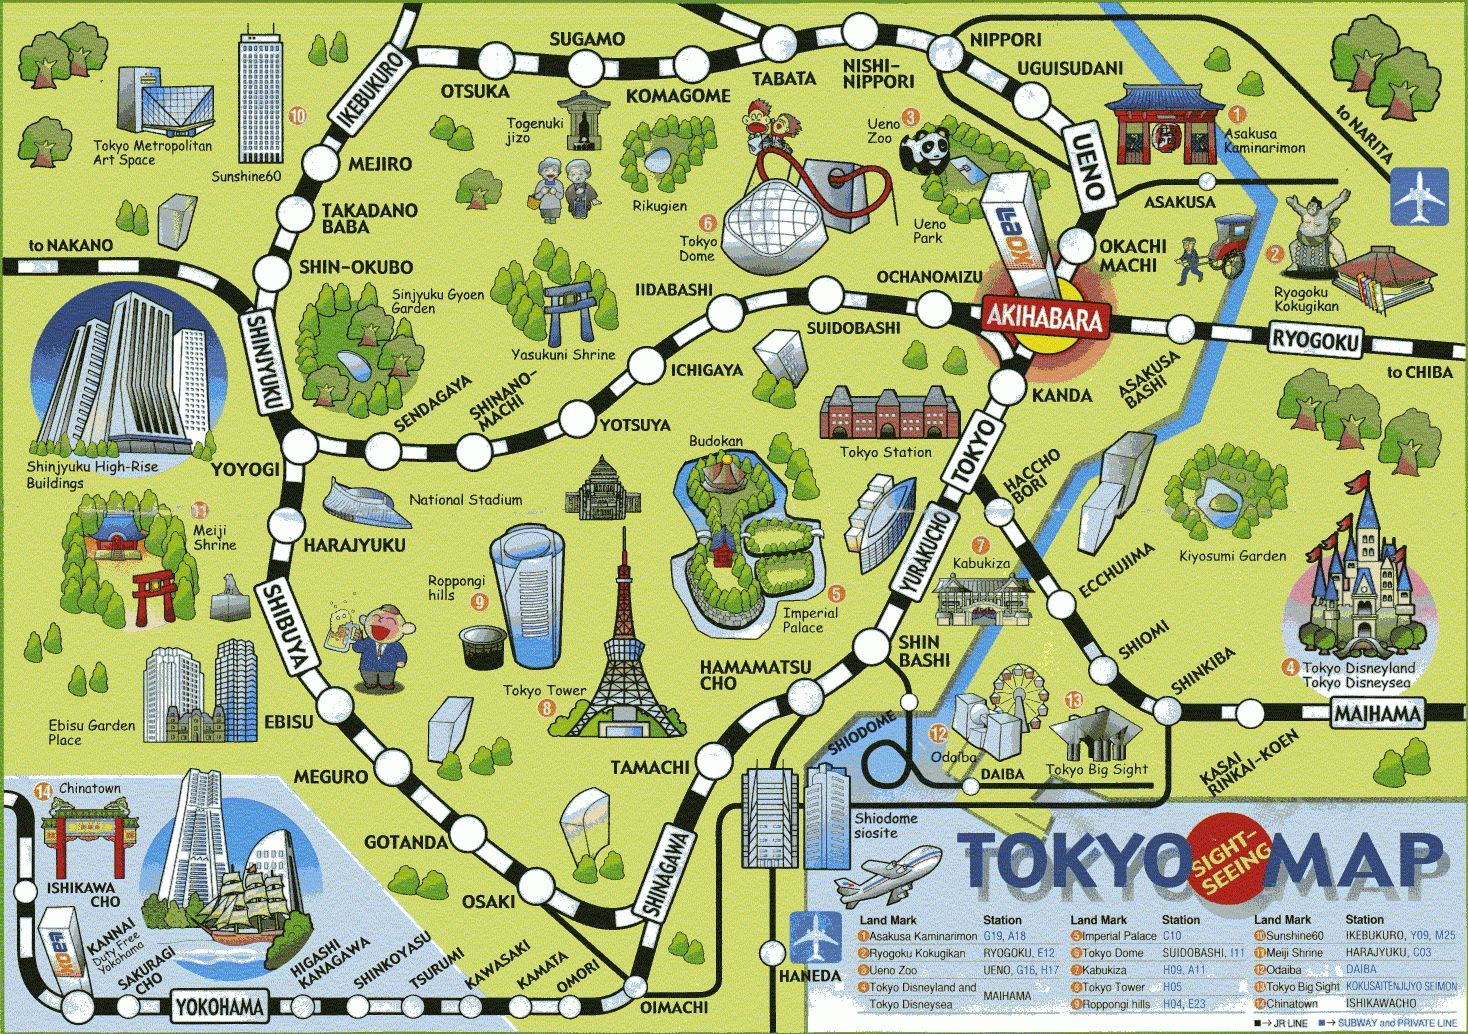 Tokyo Subway Map With Attractions.Image Result For Printable Map Of Tokyo Attractions Japan In 2019